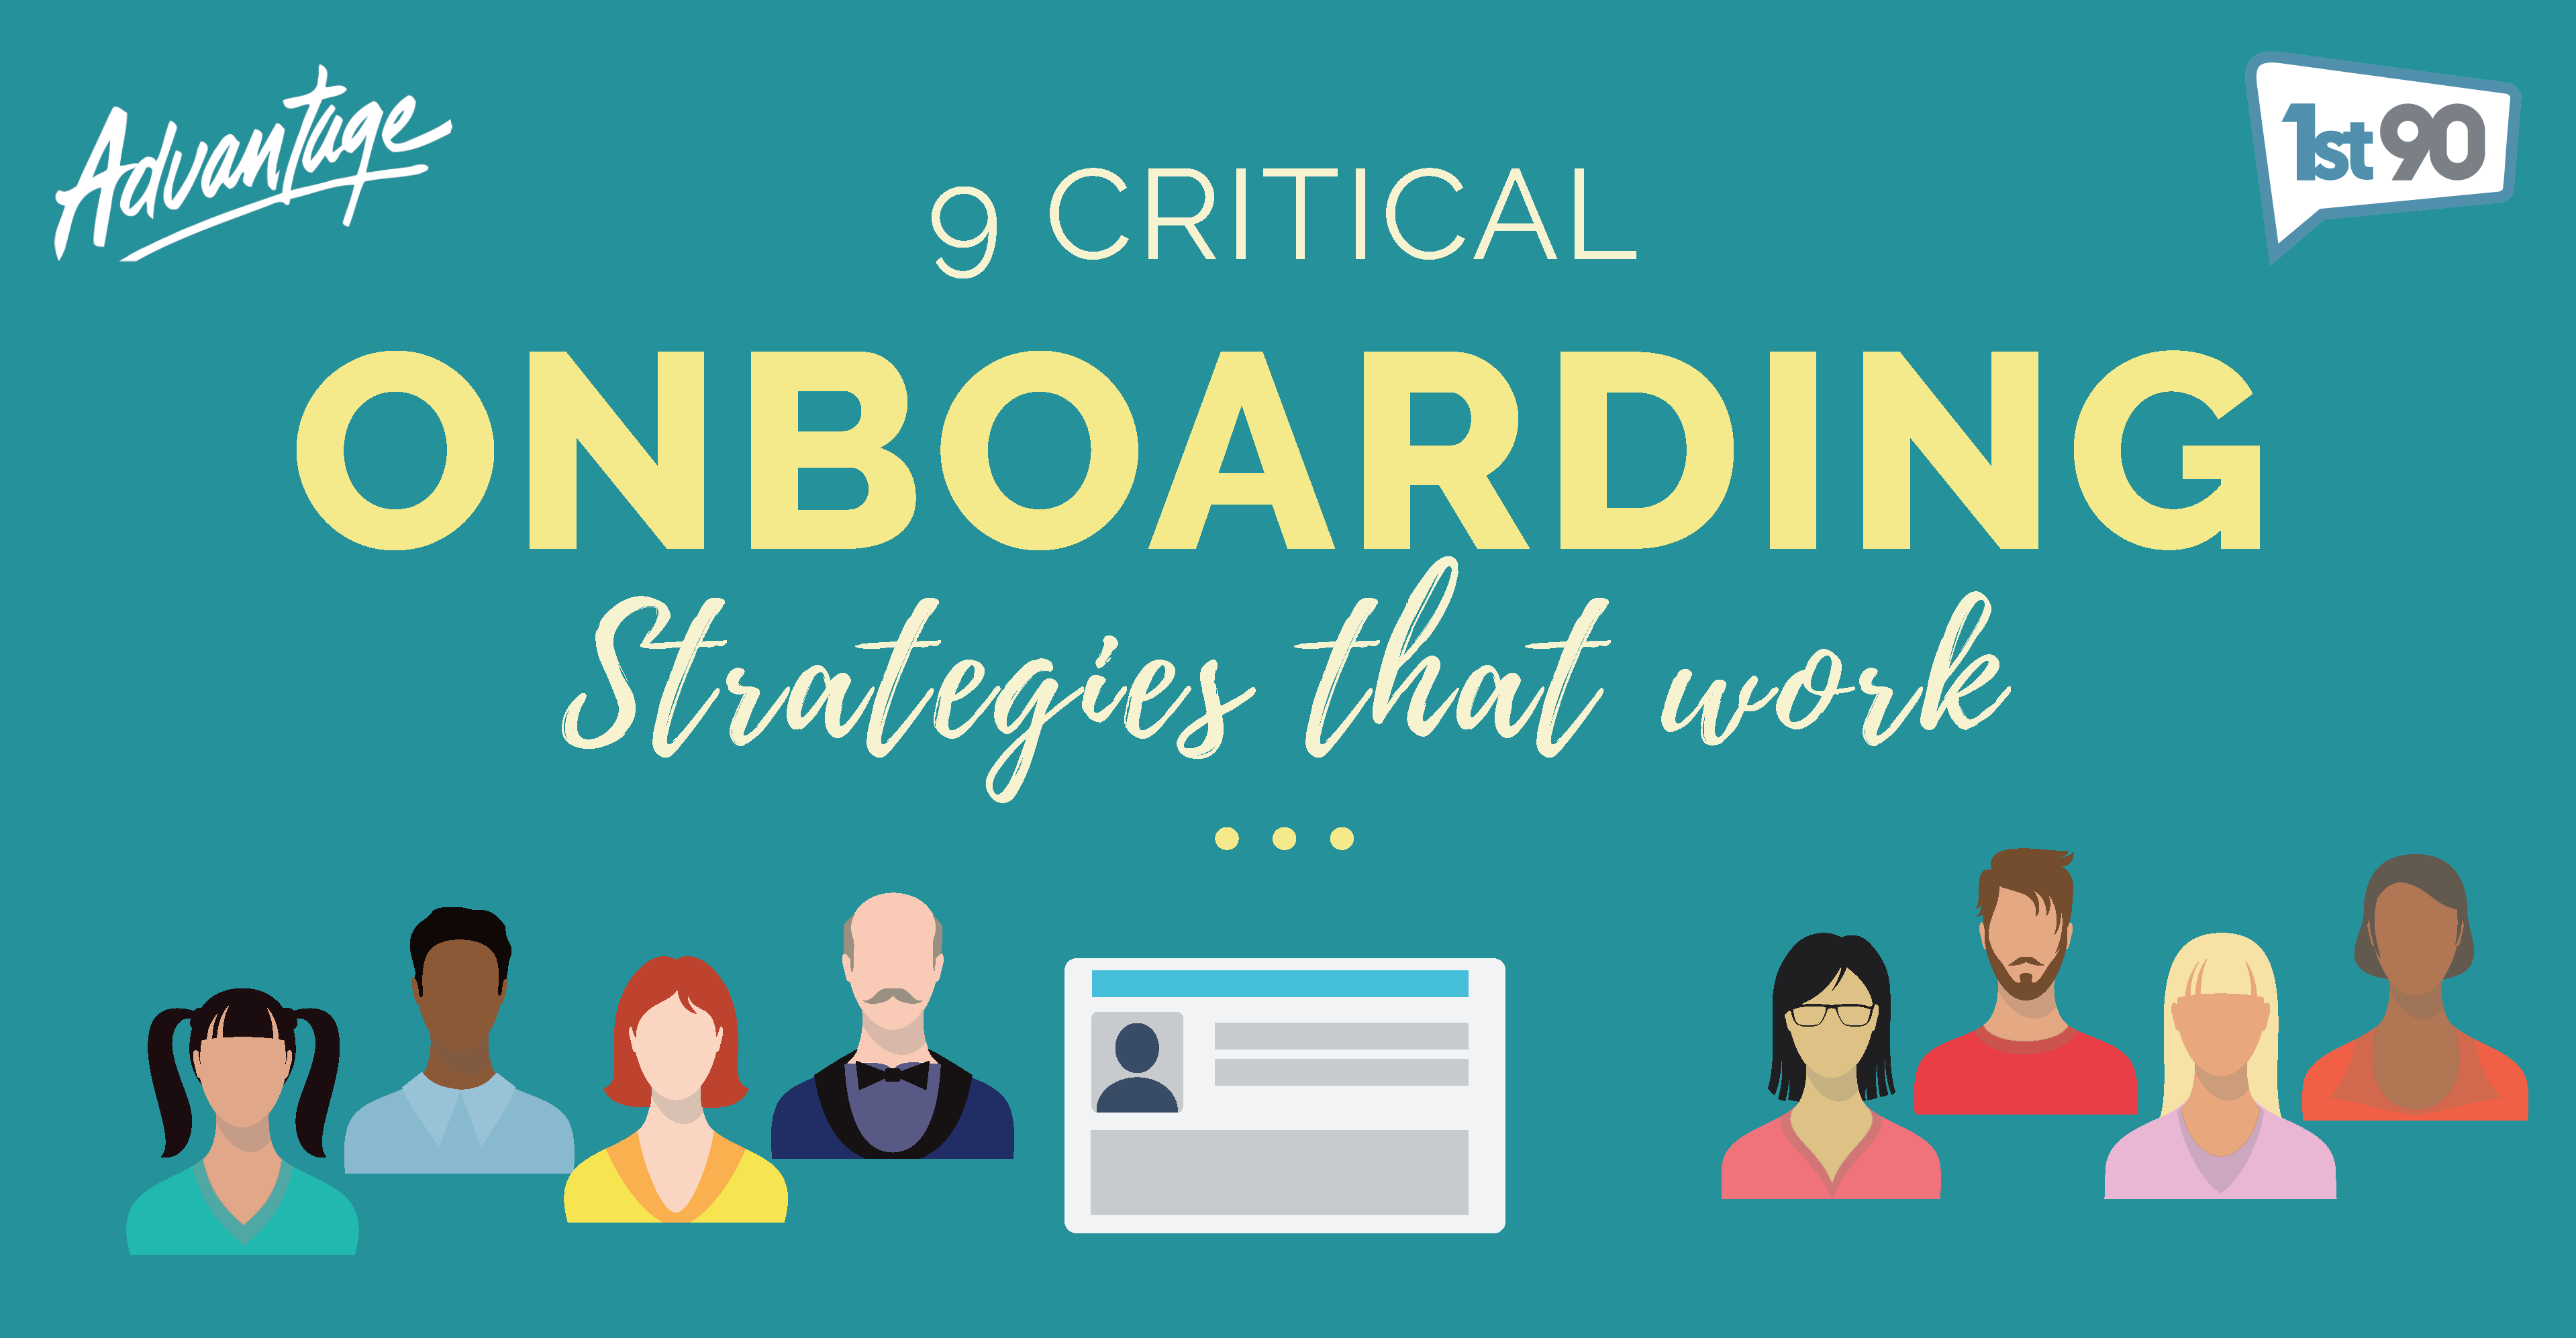 Onboarding - 9 ways to get it right